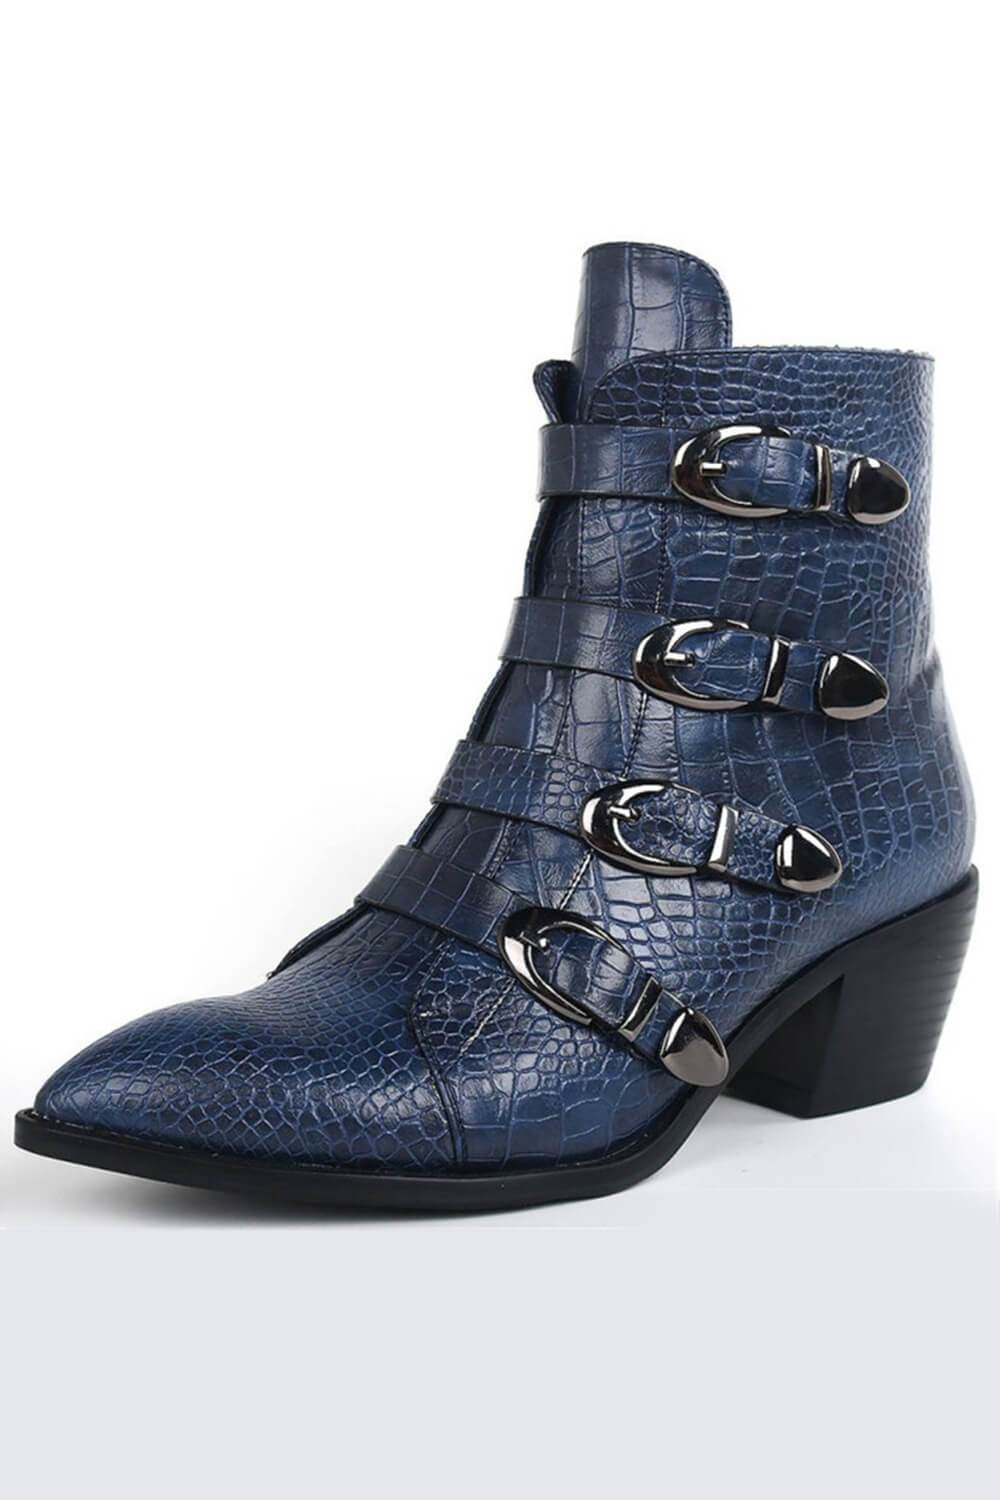 Steelblue Croc Ankle Boots With Buckle Detail (4110248443963)